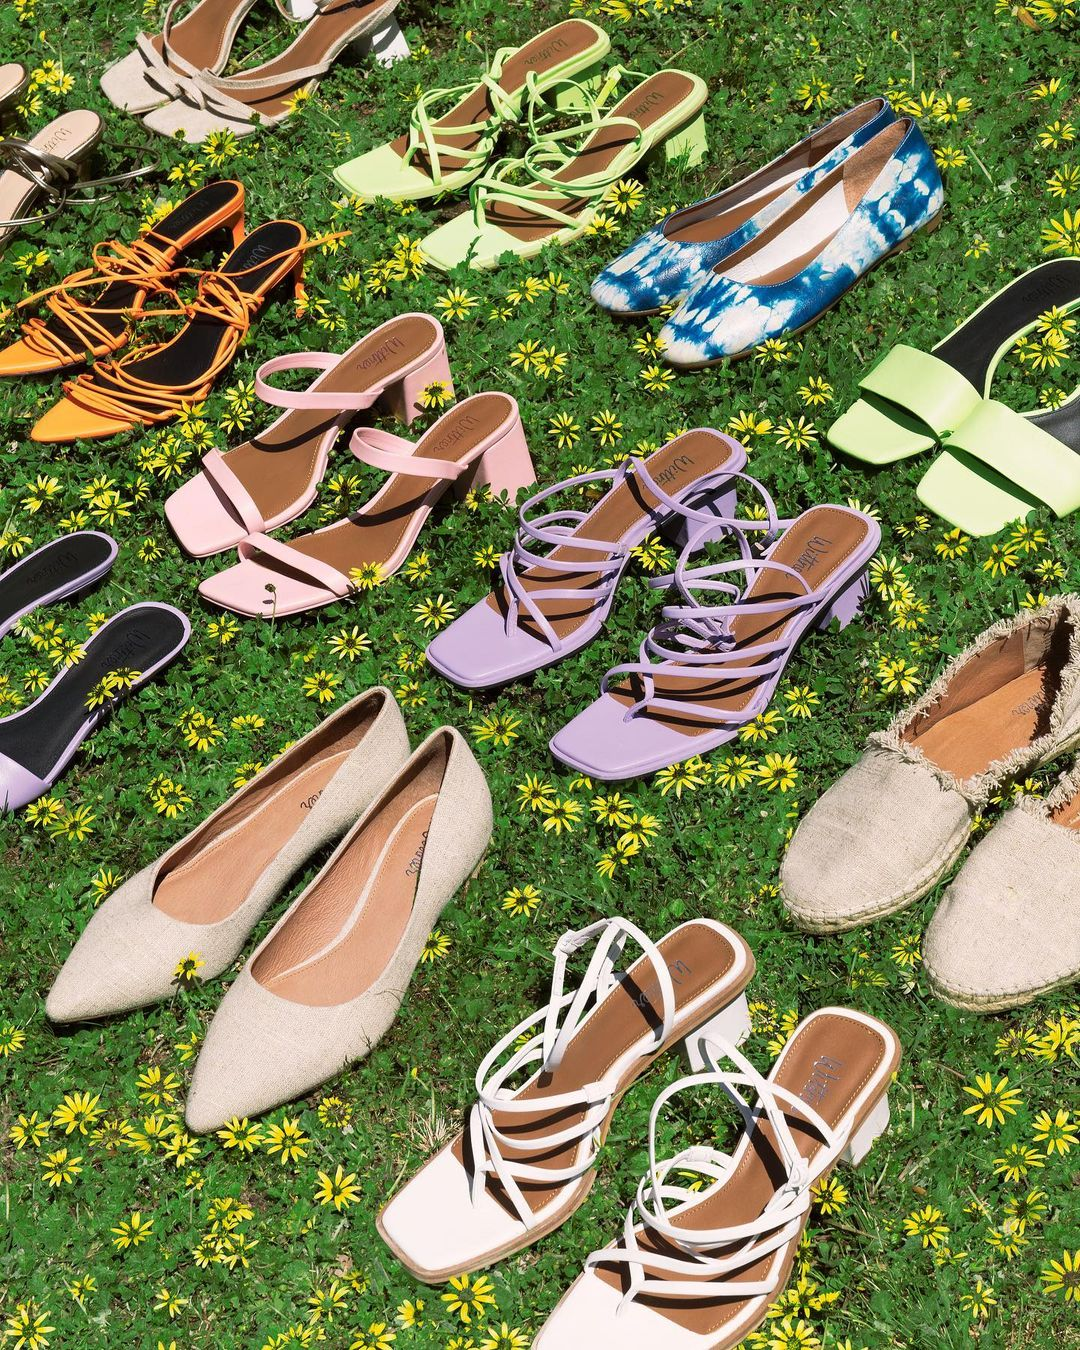 Shoe-up! How to Know Which Shoes Match Which Occasion